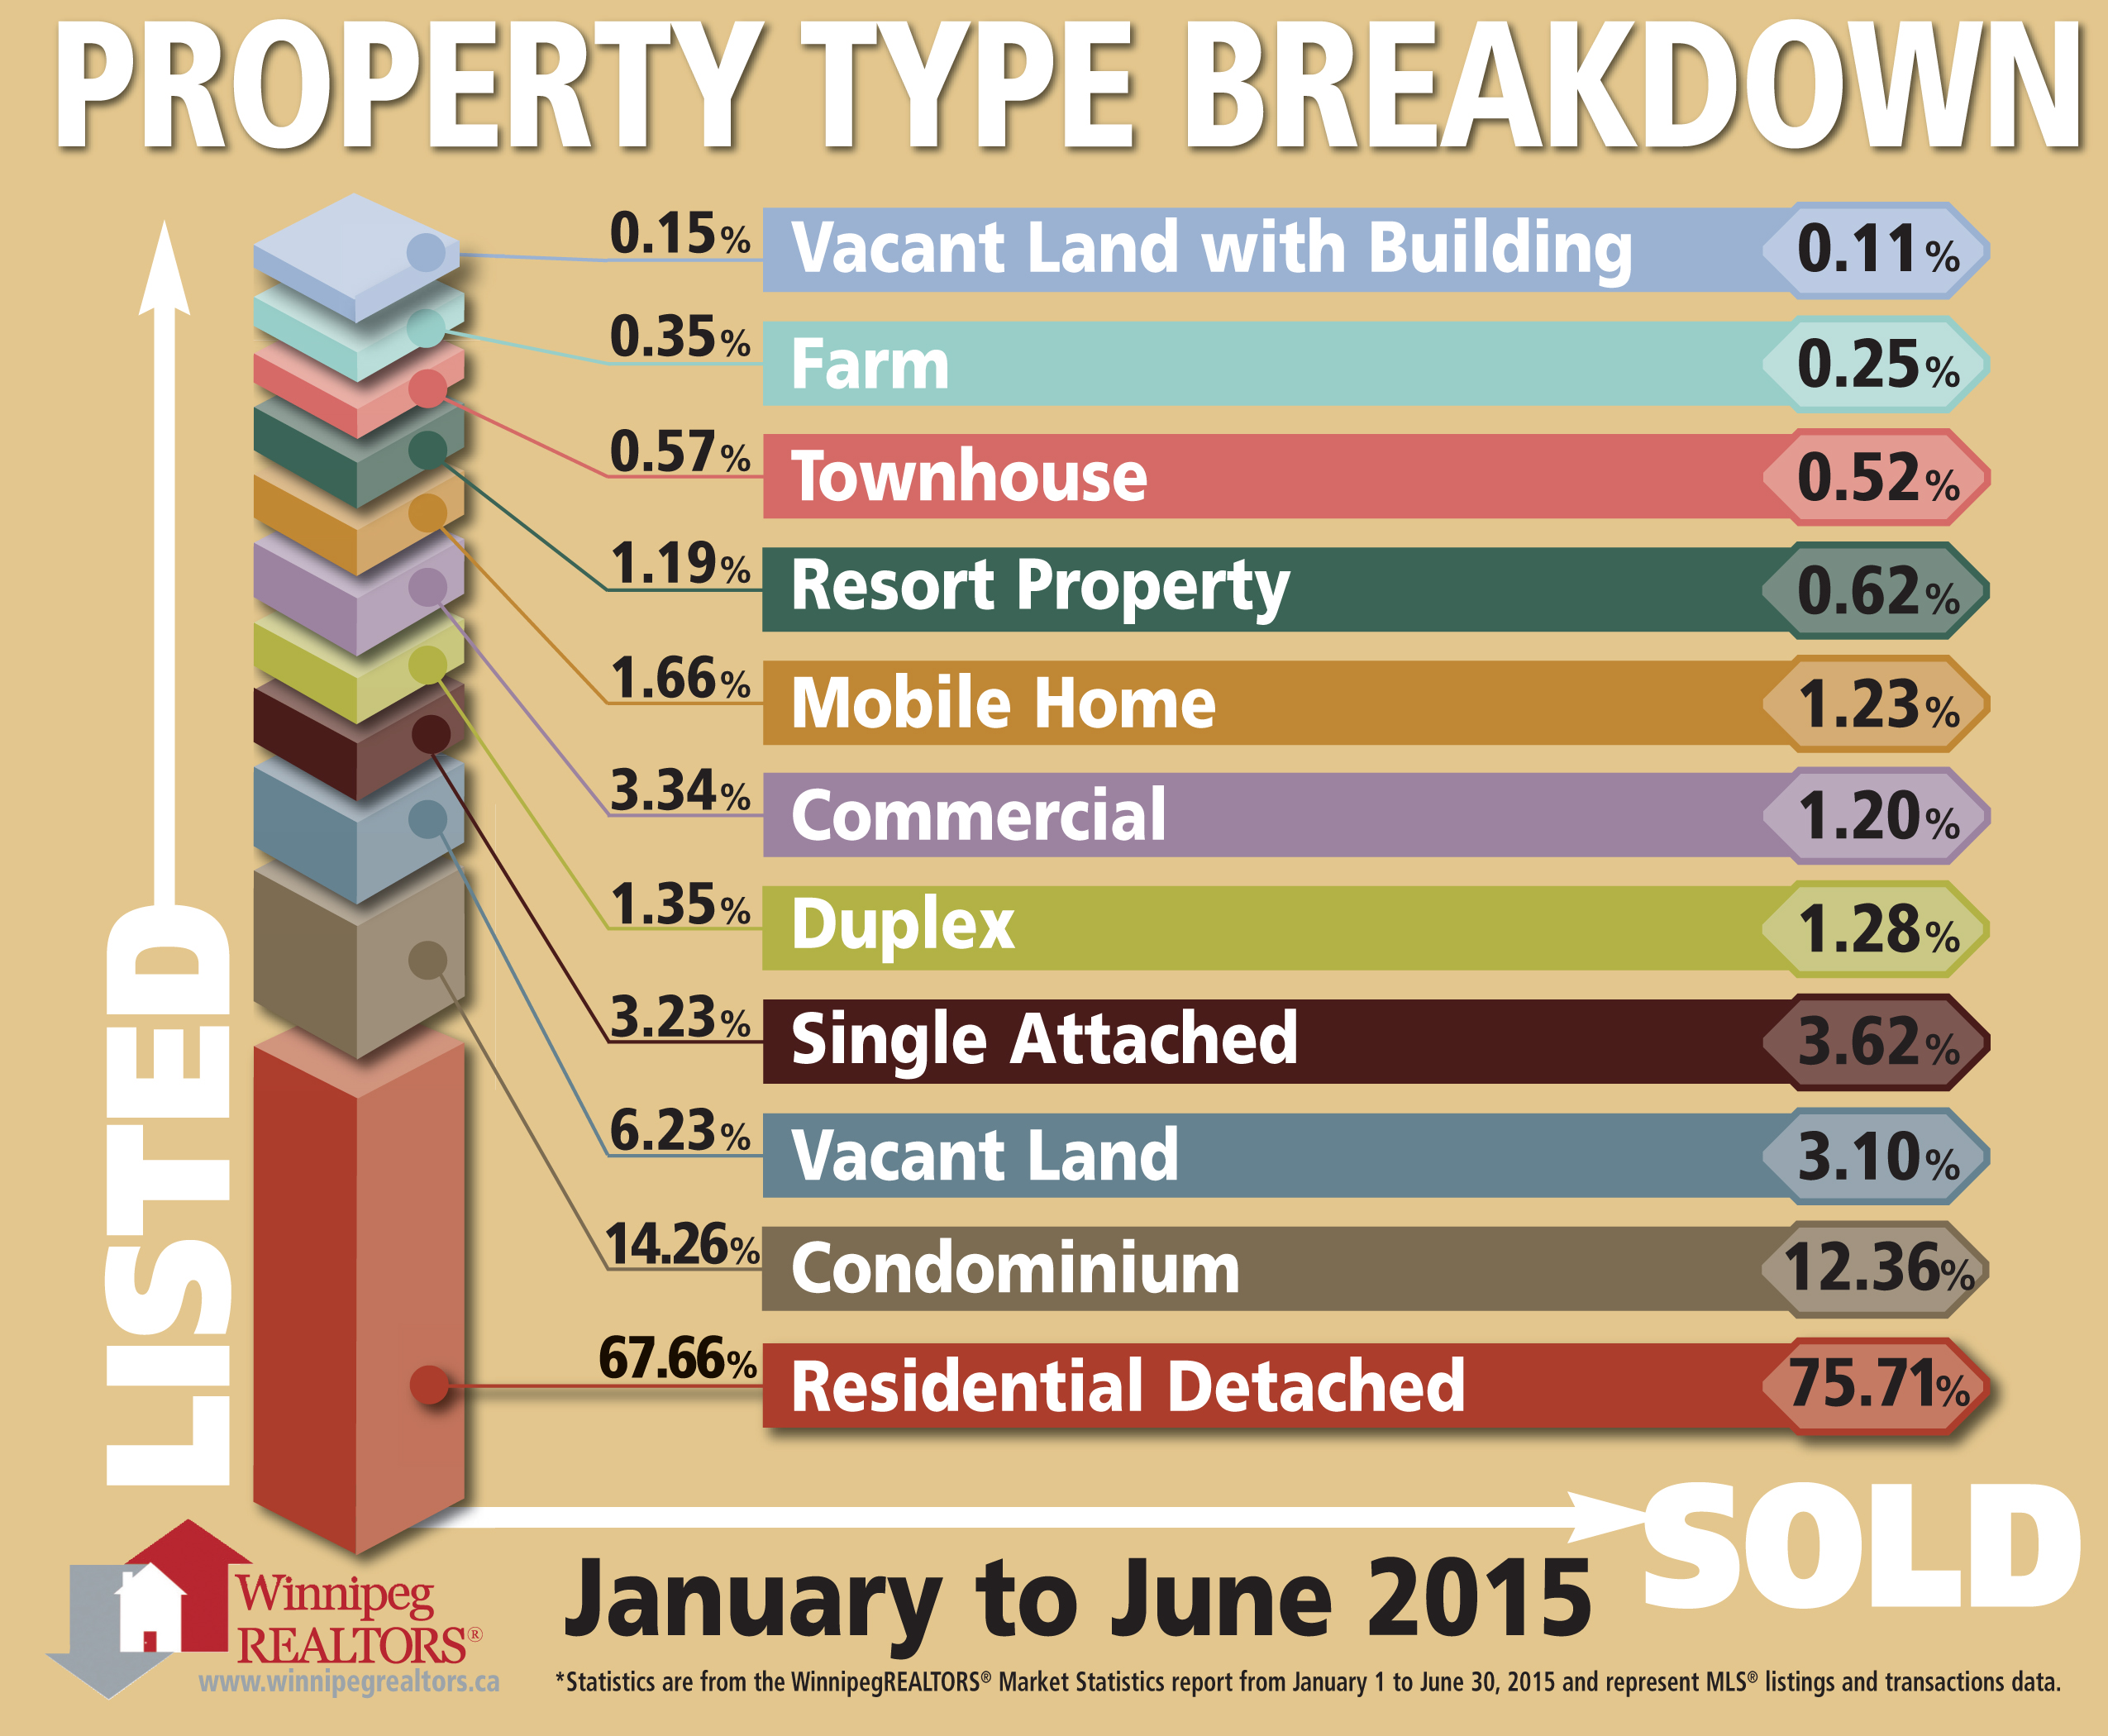 2015-07 Property Type Breakdown.jpg